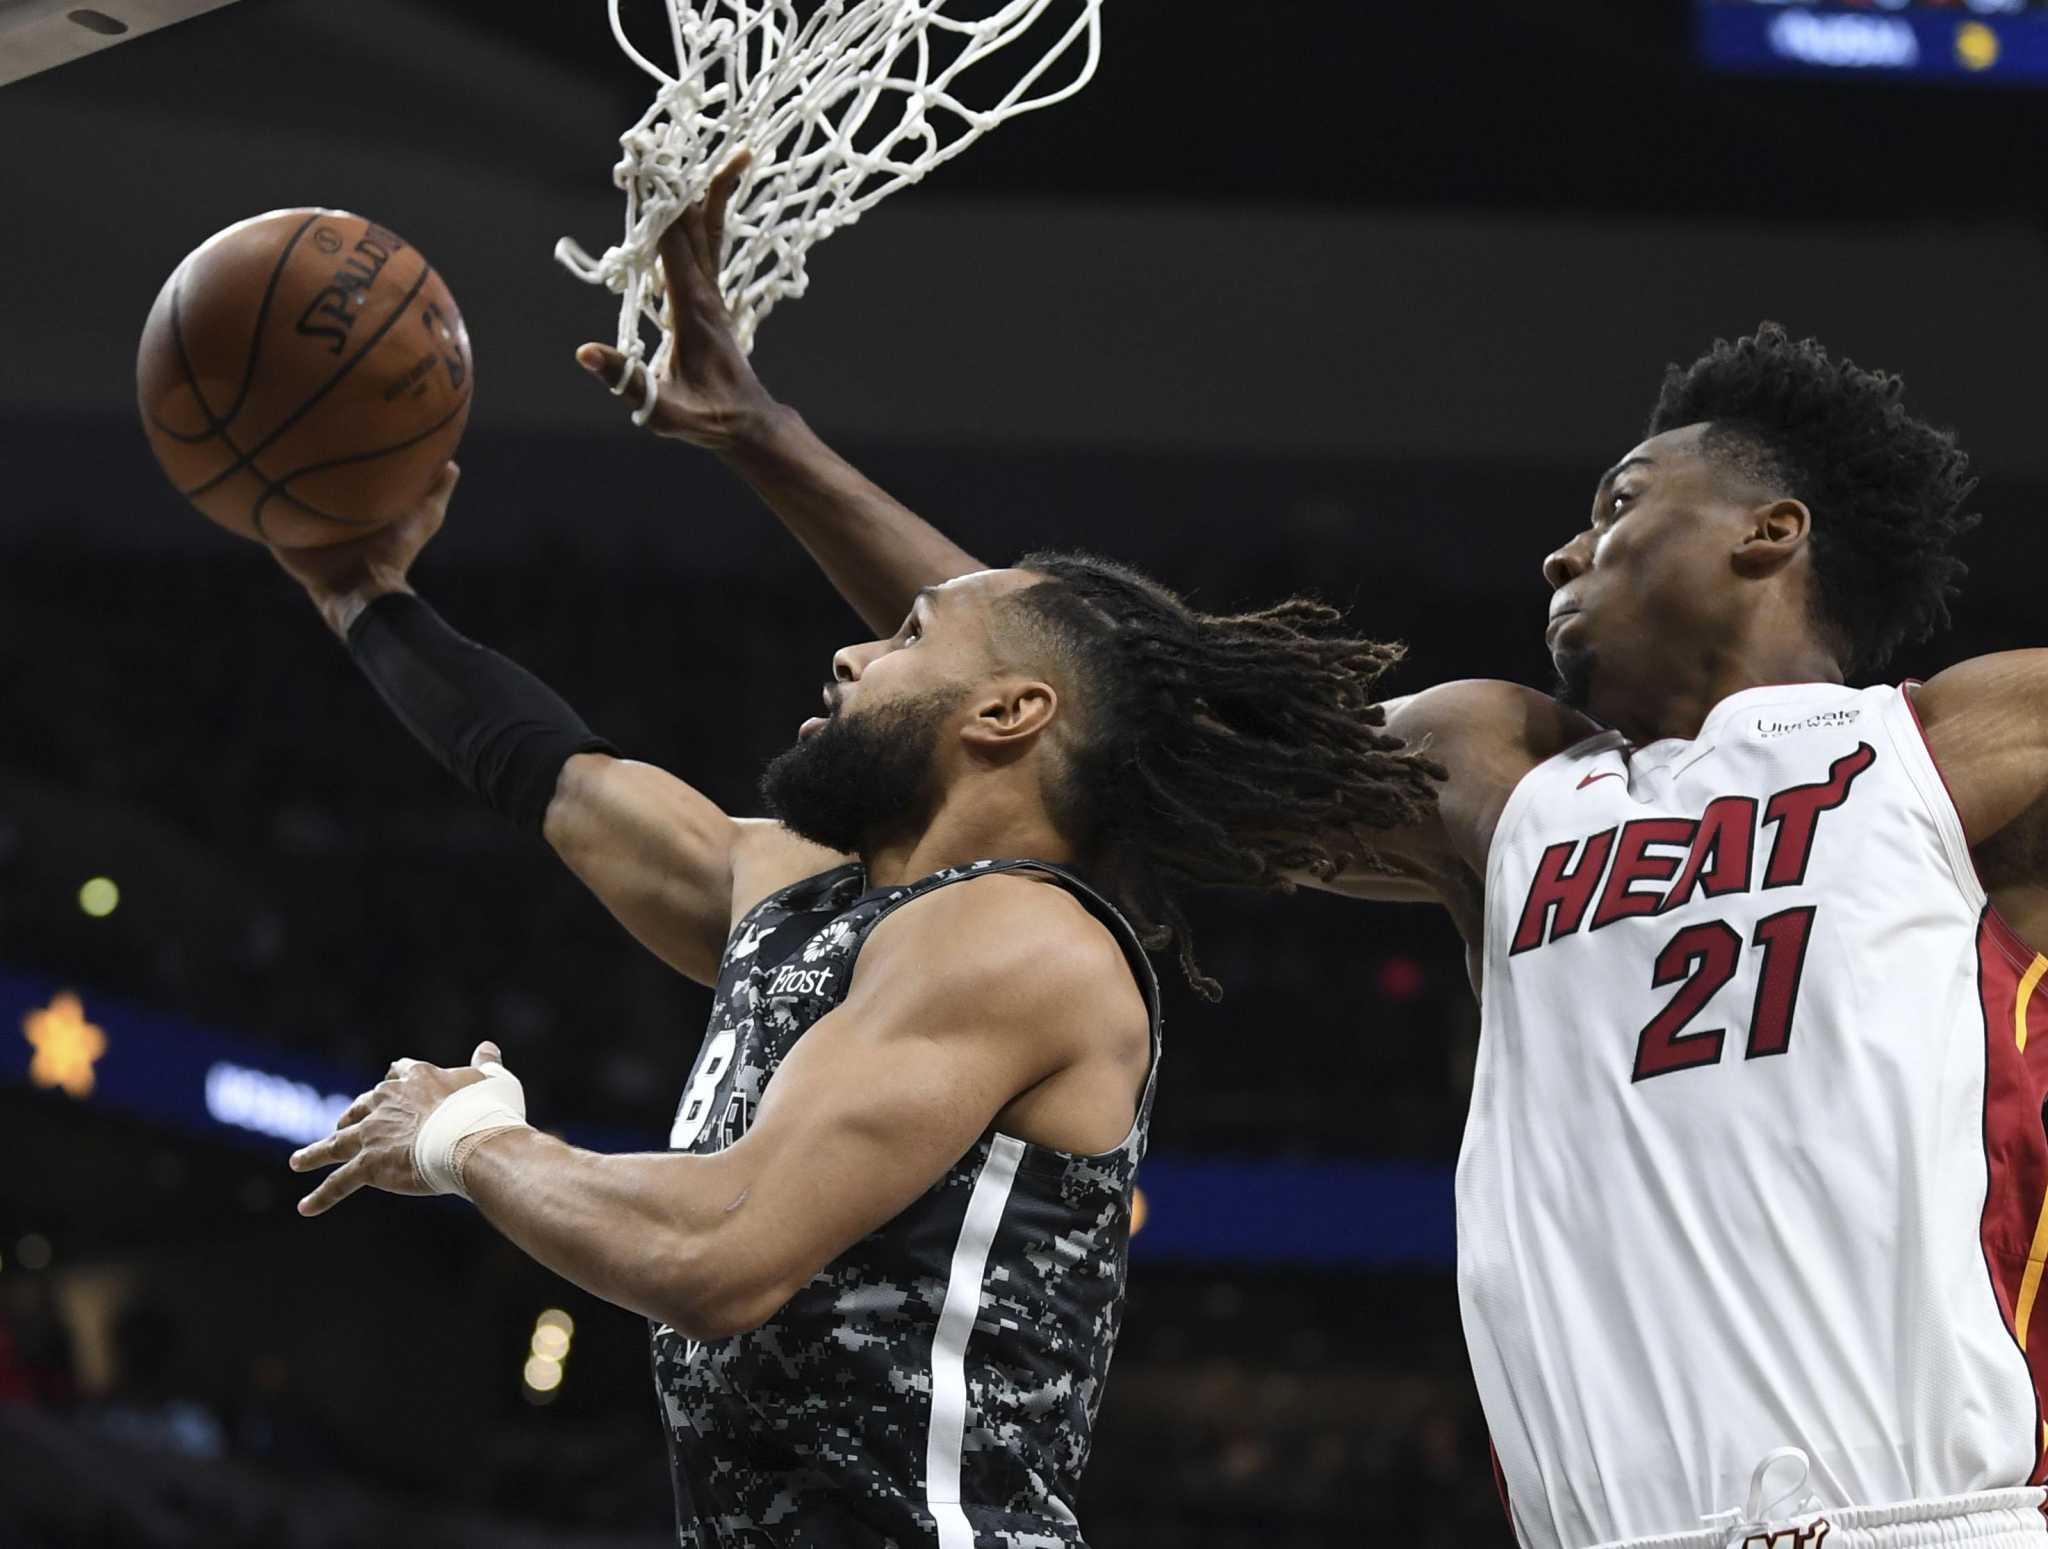 Spurs notebook: Patty Mills joins exclusive club